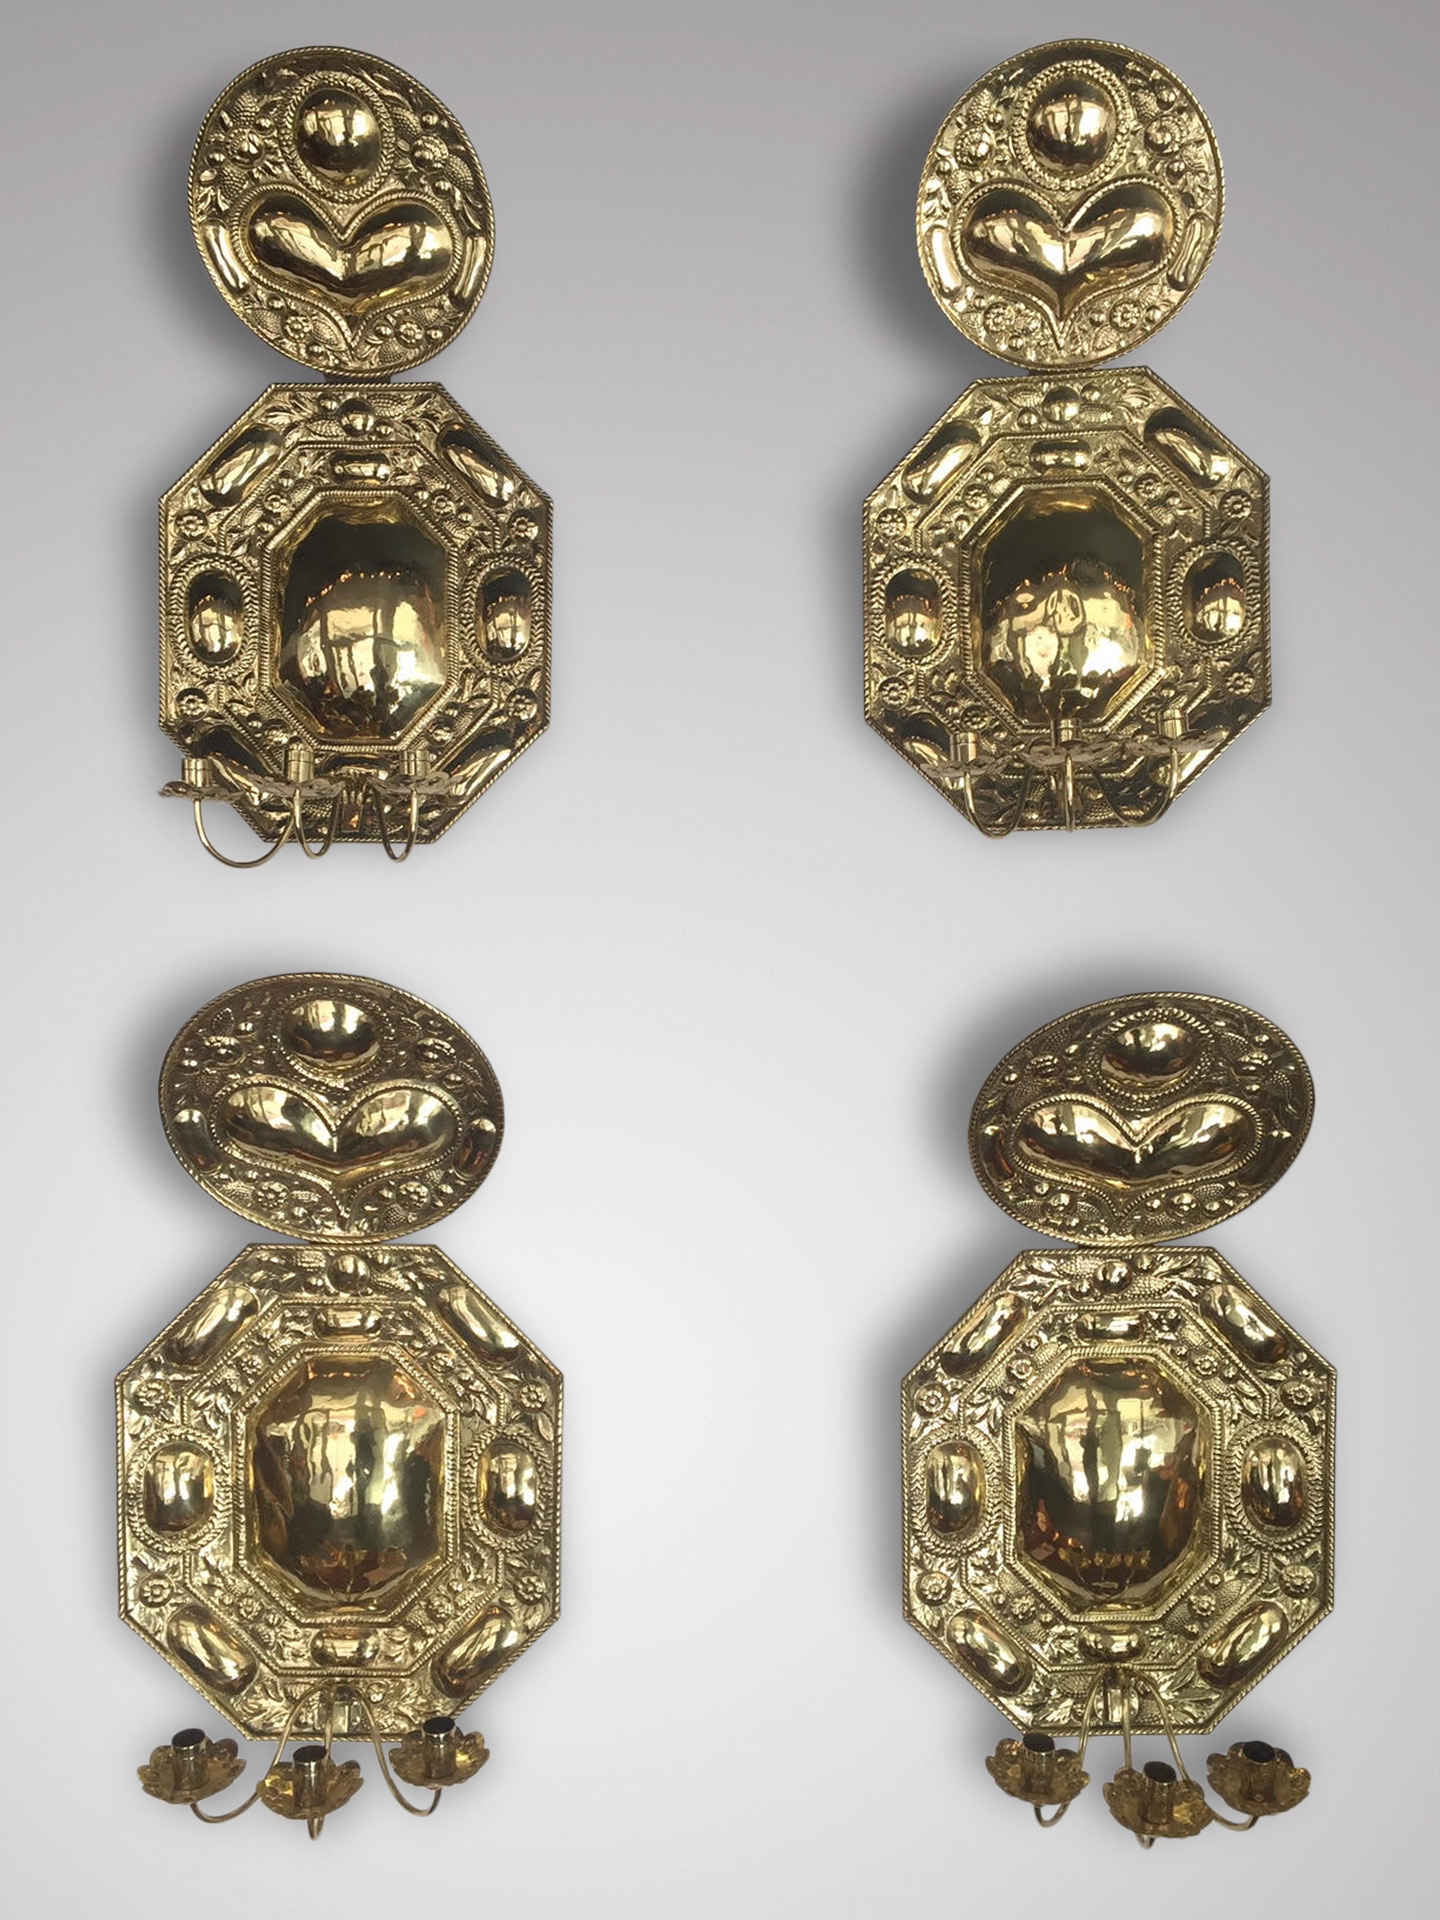 SOLD/18C SET OF 4 BRASS WALL SCONCES